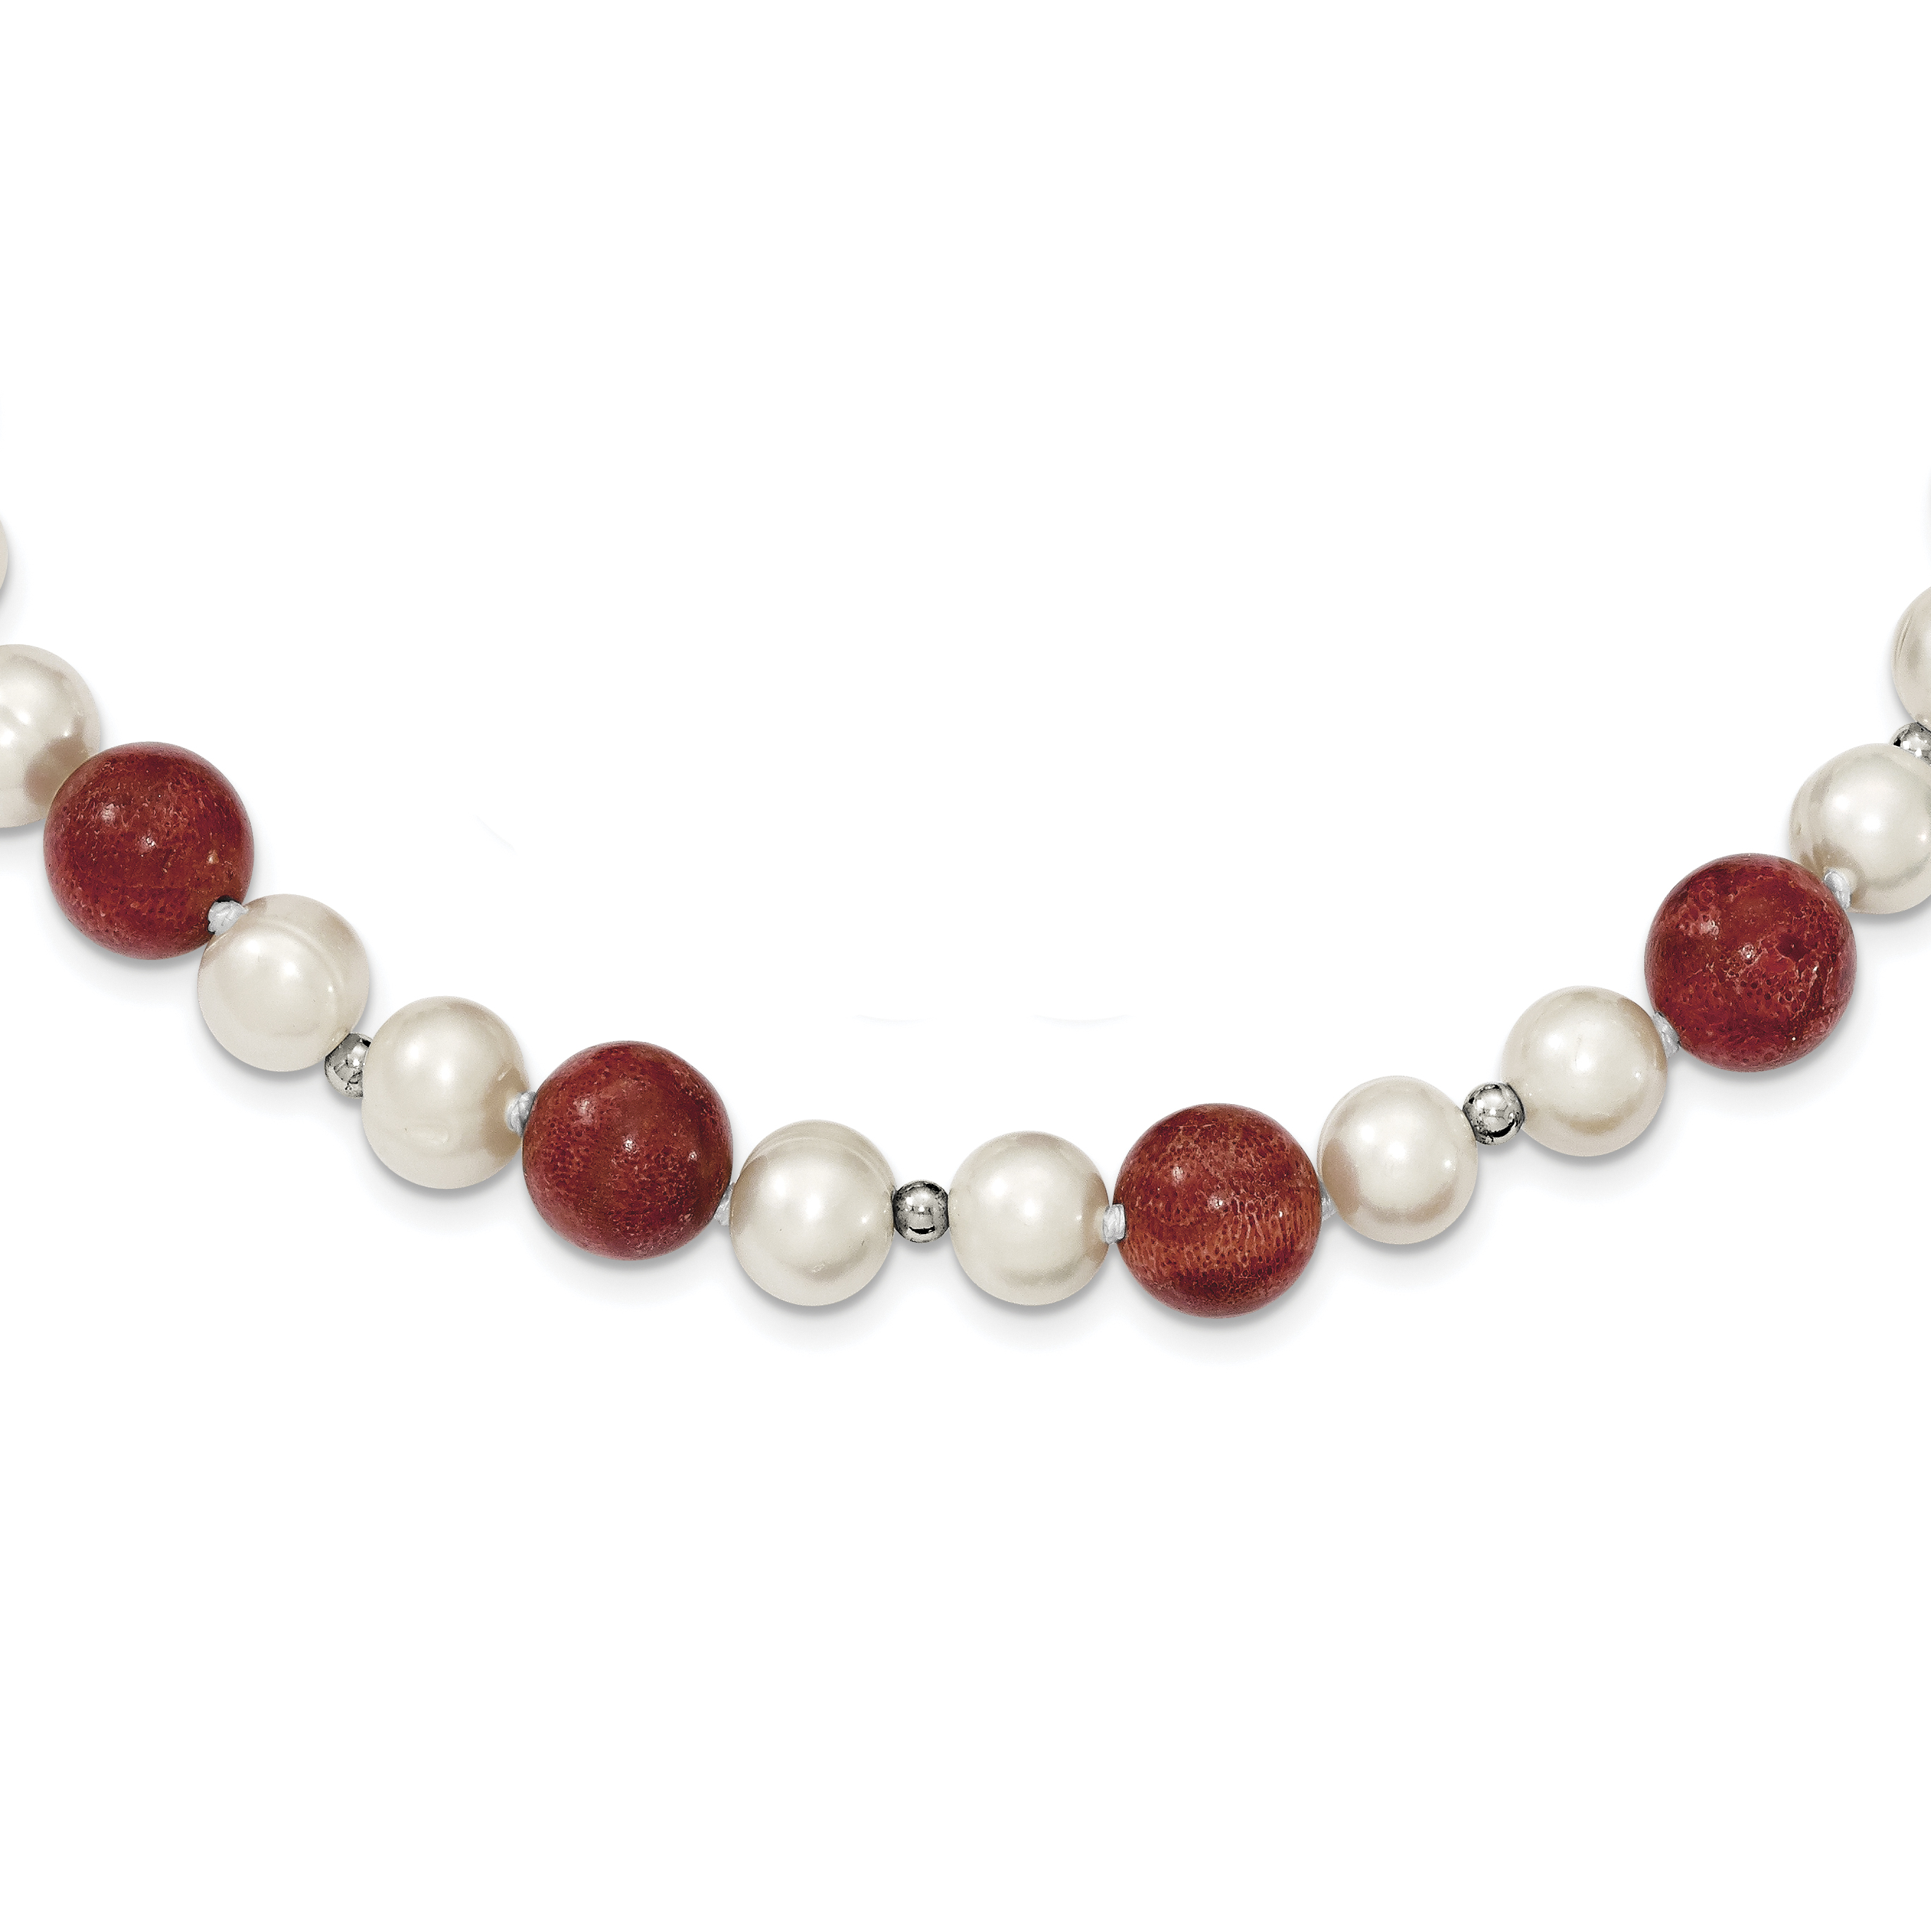 925 Sterling Silver FW Cultured Pearls & Stabilized Red Coral Necklace by